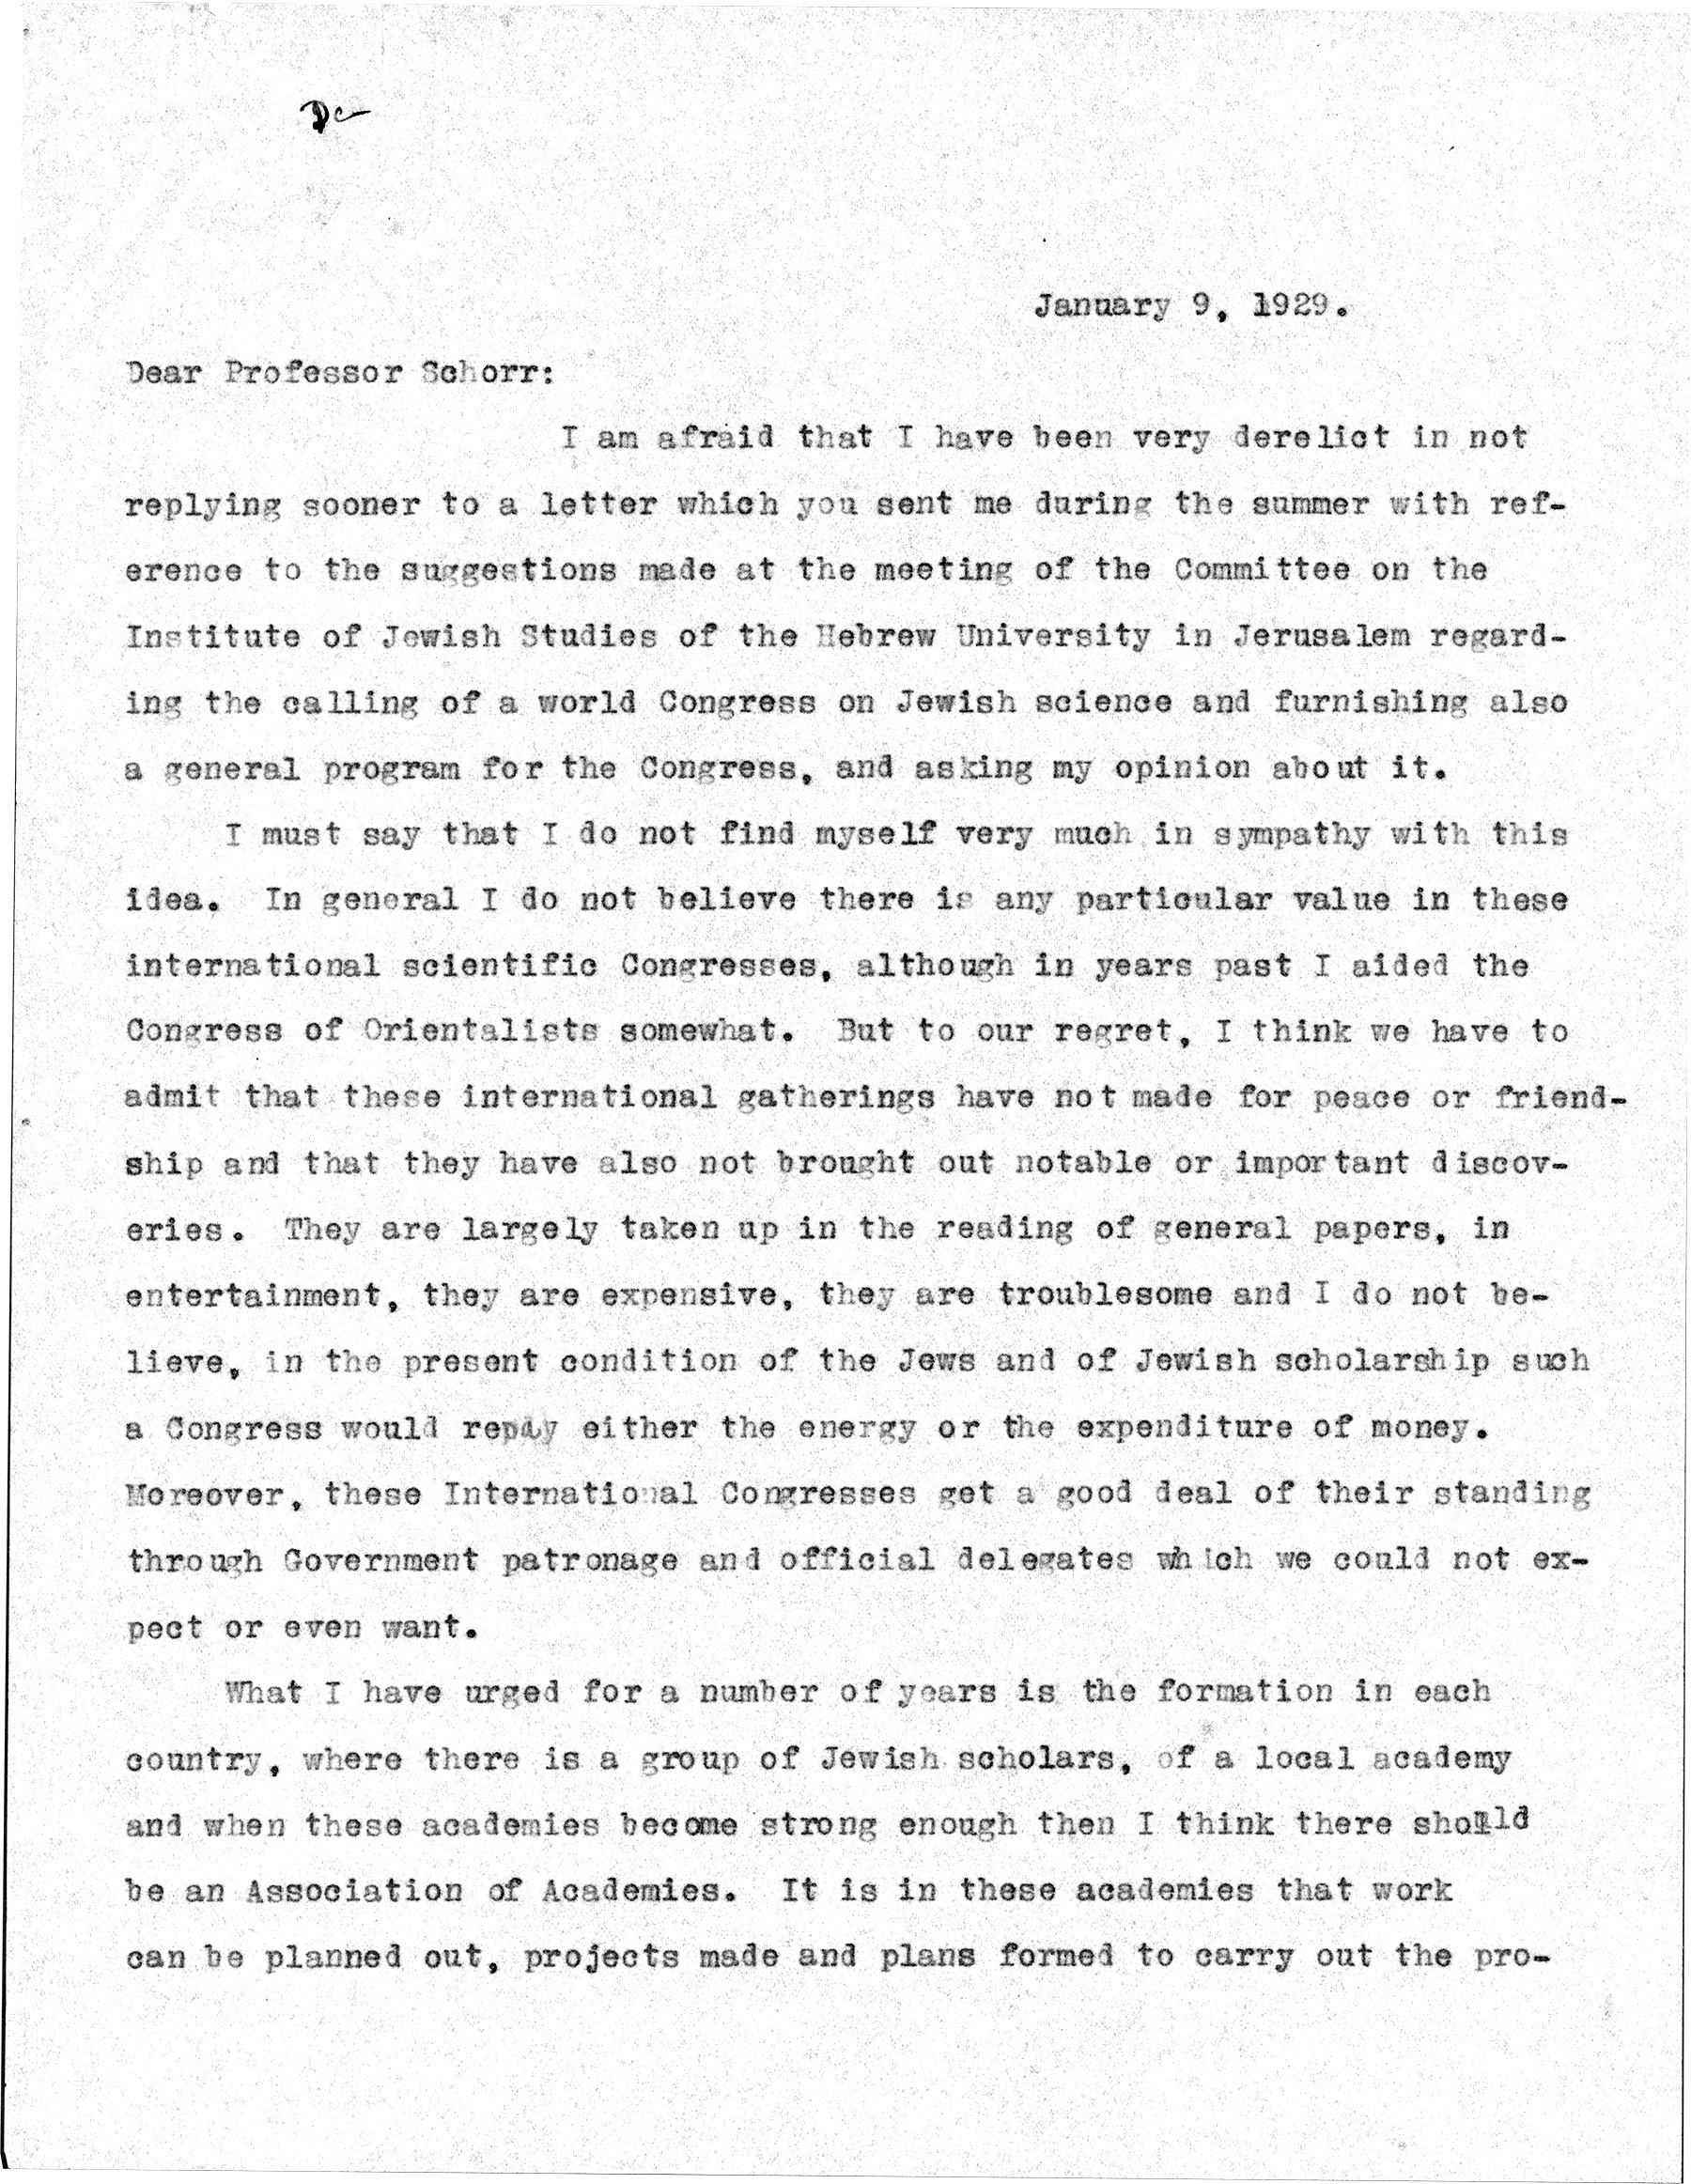 Cyrus Adler letter, page 1